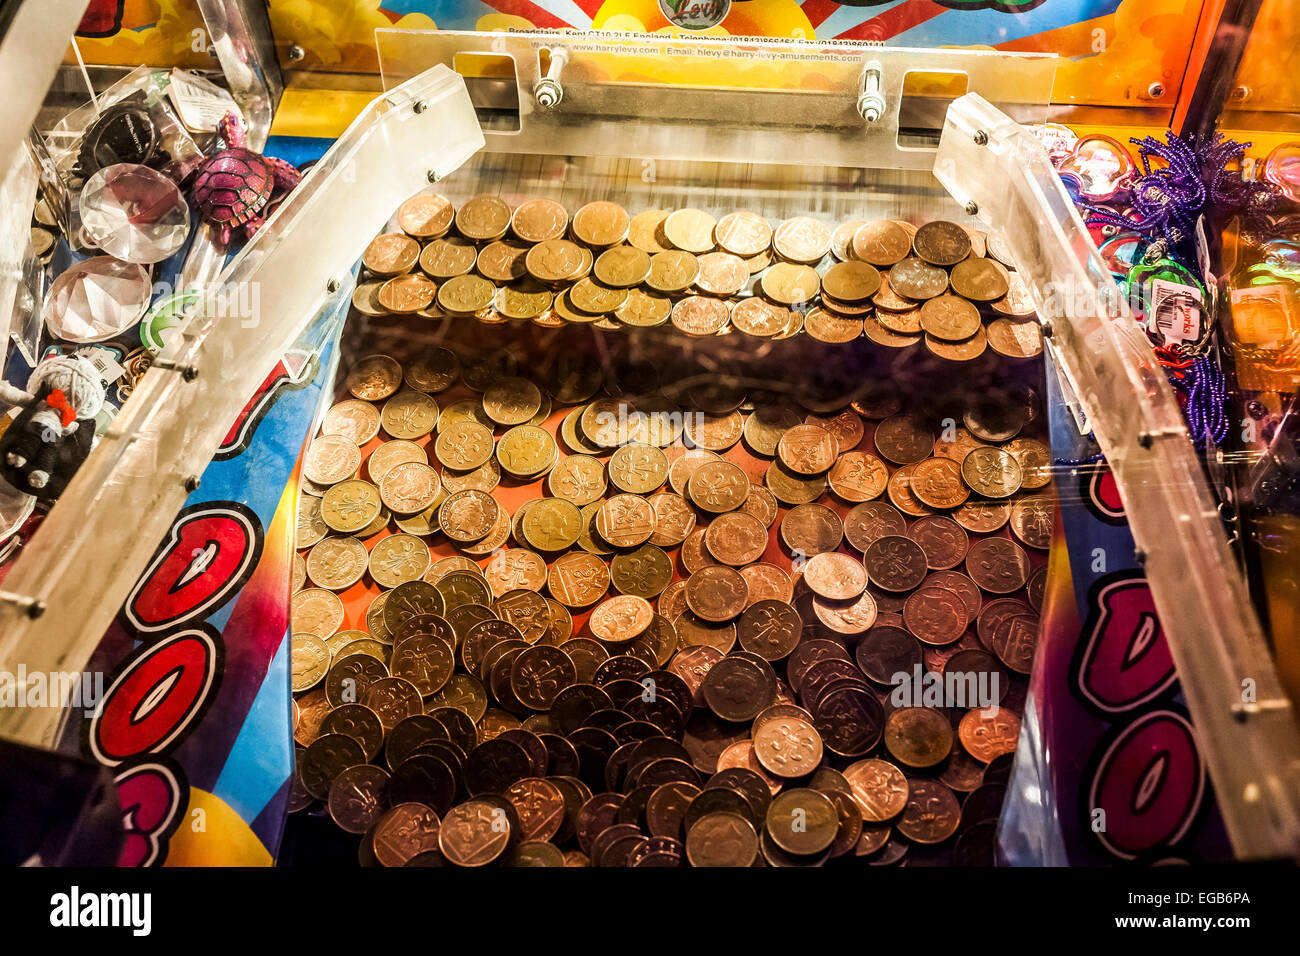 Coin pusher arcade game at Brighton - Stock Image